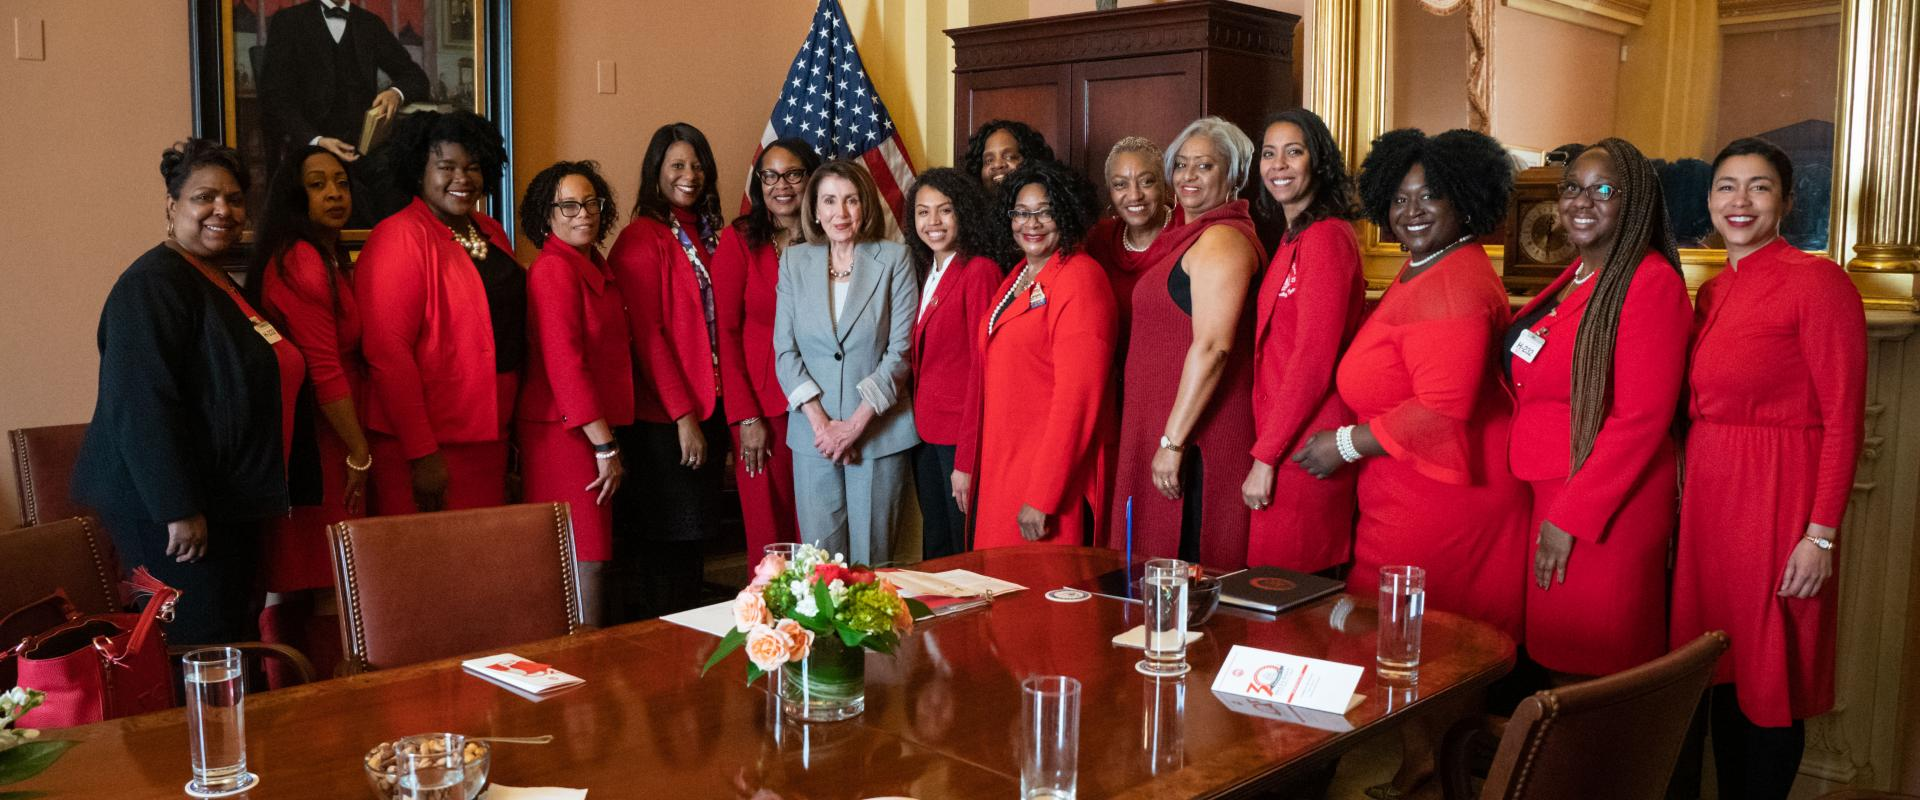 Congresswoman Pelosi meets with the women of Delta Sigma Theta from the Bay Area, who made their 30th annual trip to Capitol Hill to share their priorities with Members of Congress.